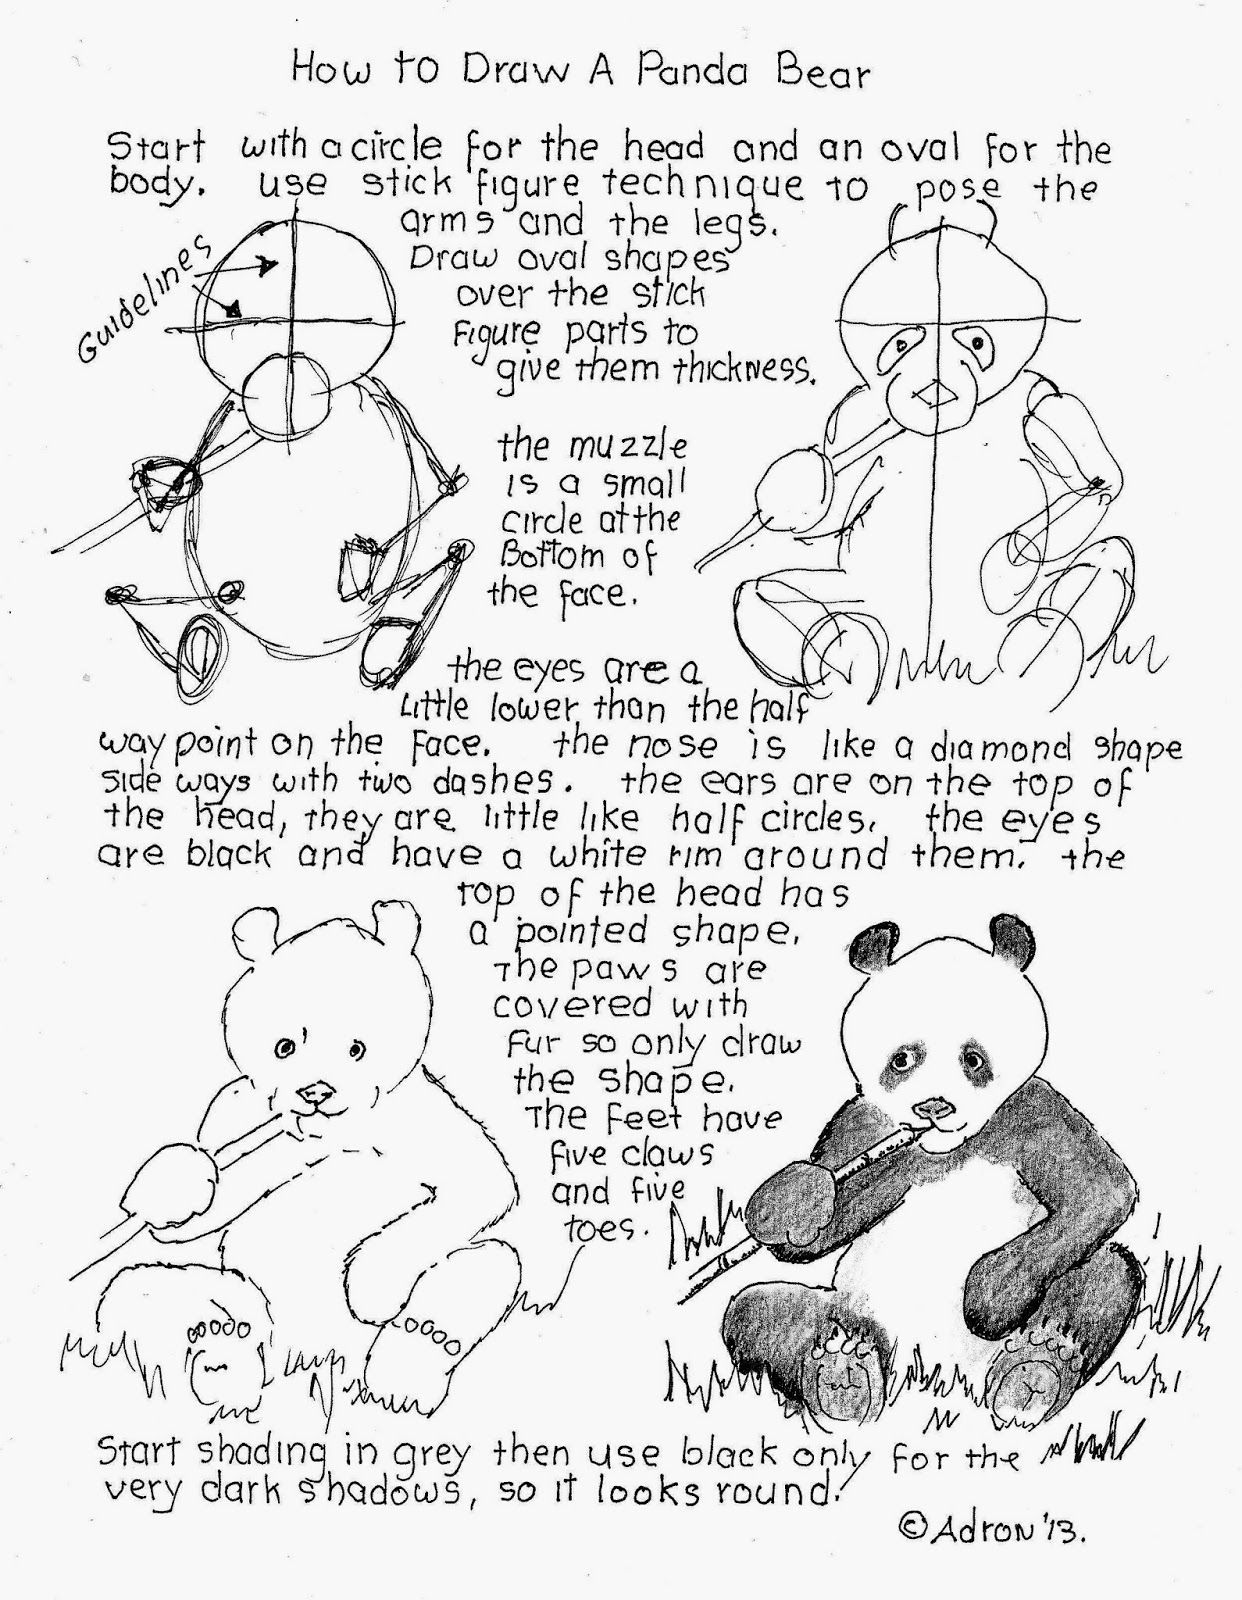 How To Draw A Panda Bear Worksheet